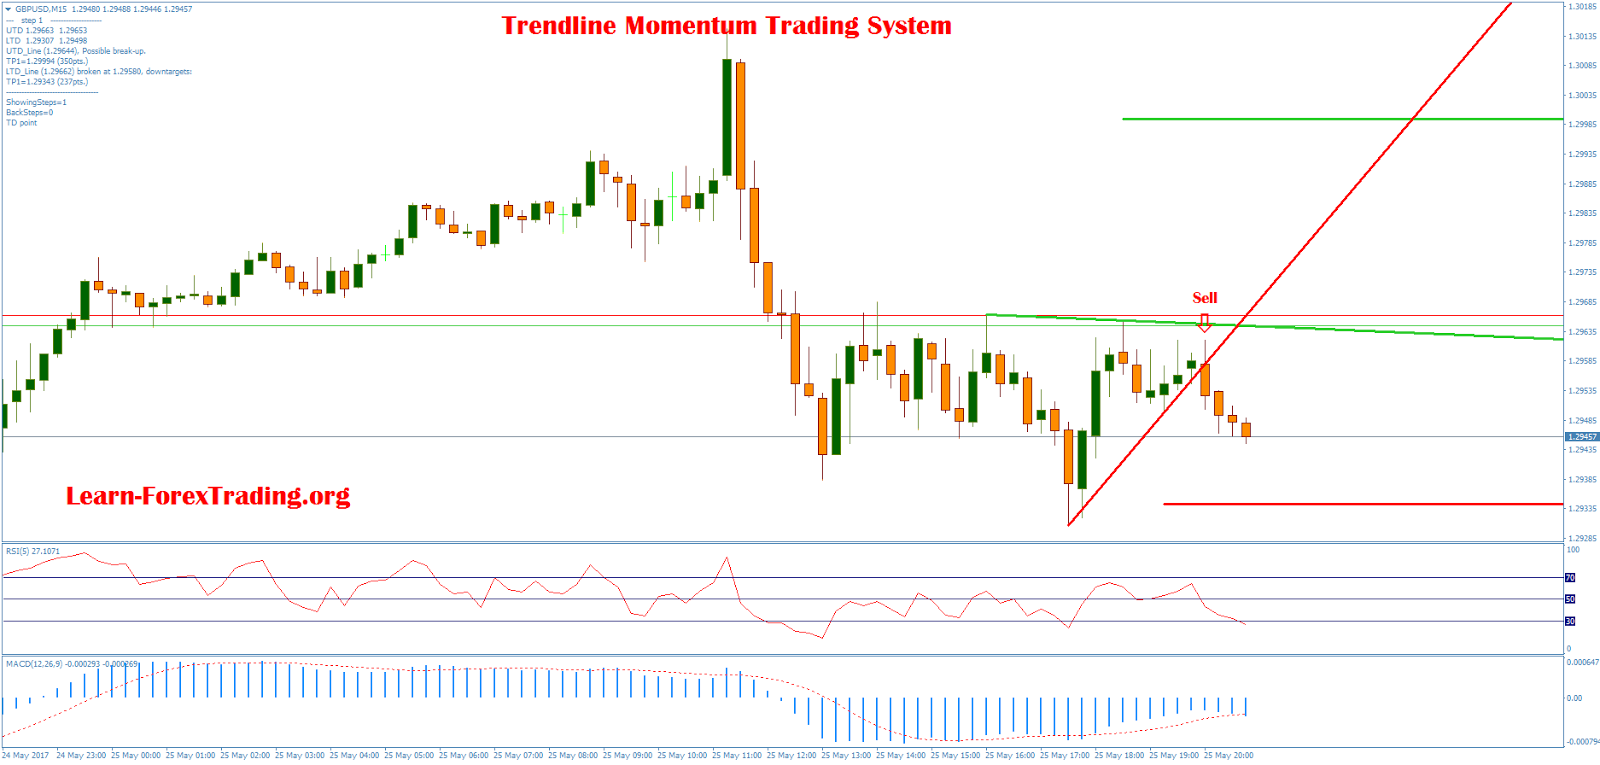 Momentum trading system